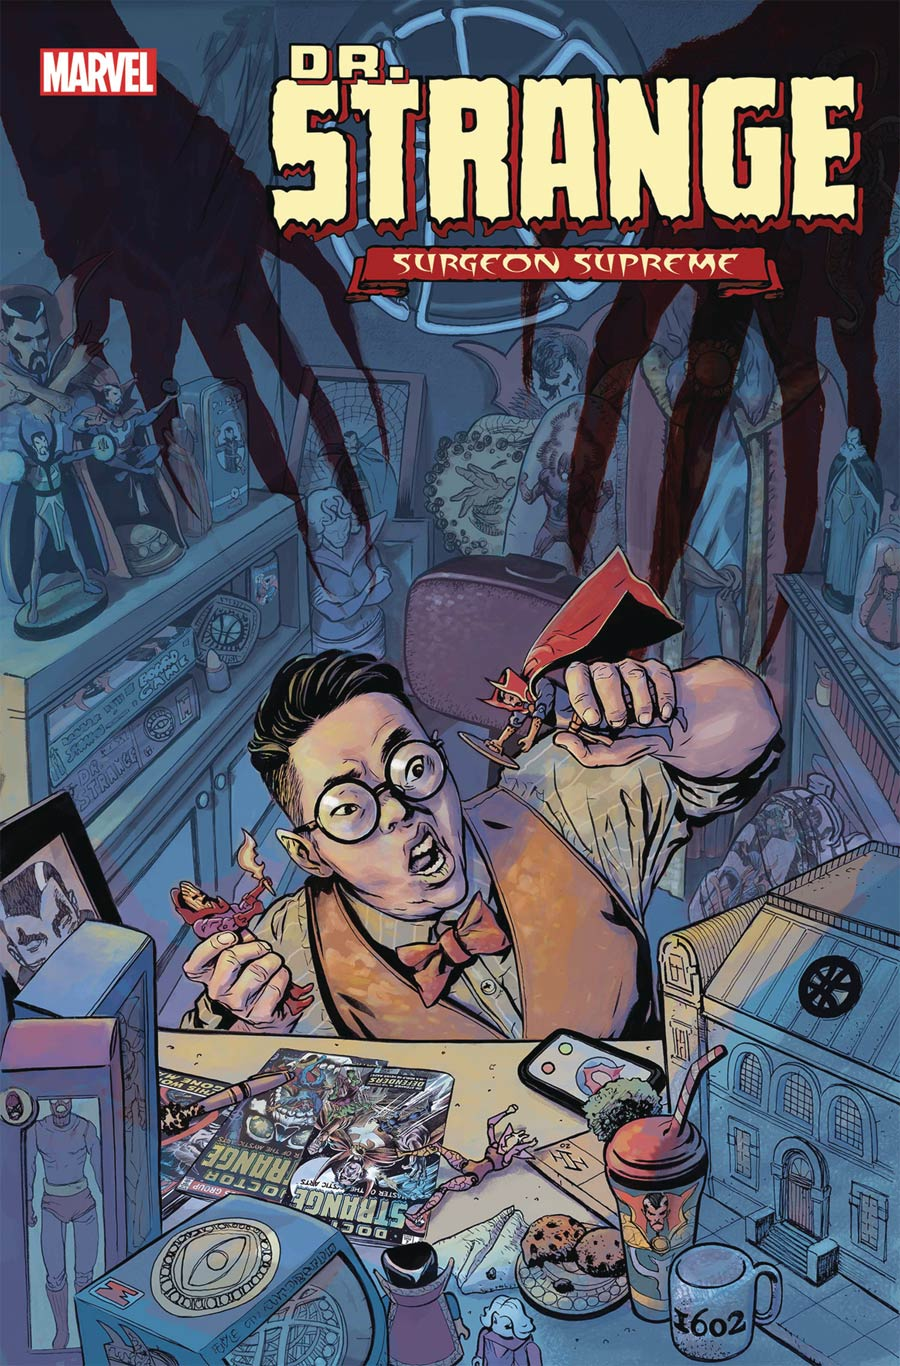 Doctor Strange Surgeon Supreme #7 Cover A Regular Max Fiumara Cover